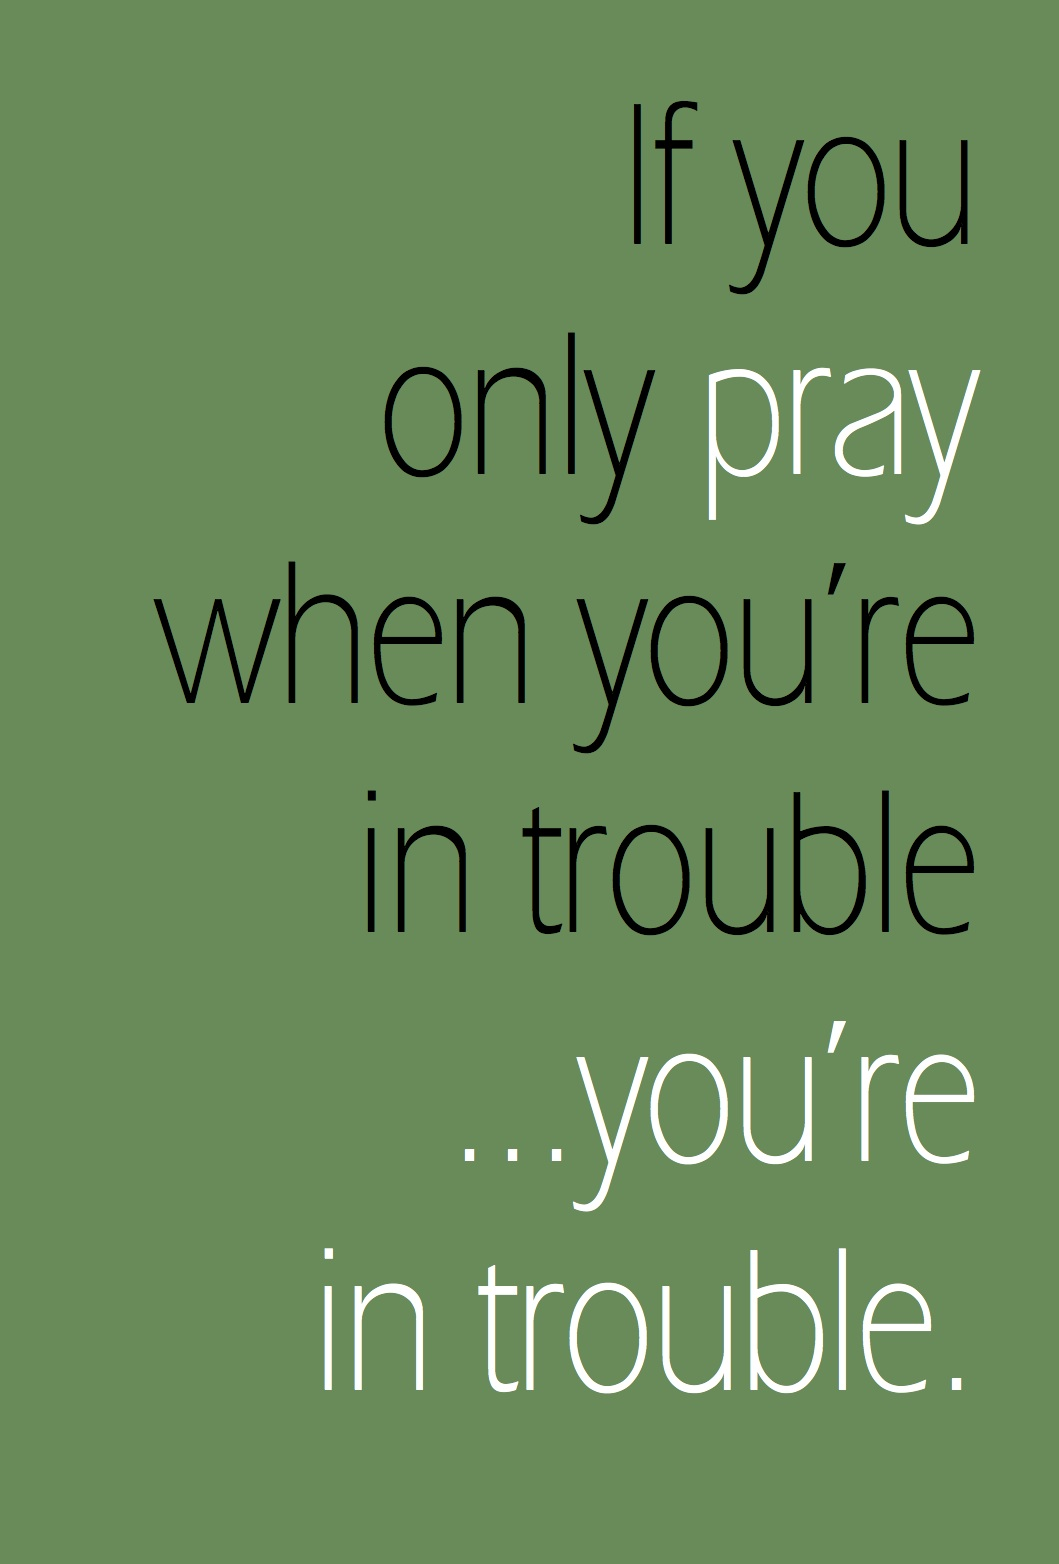 Quotes On Prayer New 17 Best Images About Faith On Pinterest  Buddhism Buddhists And .